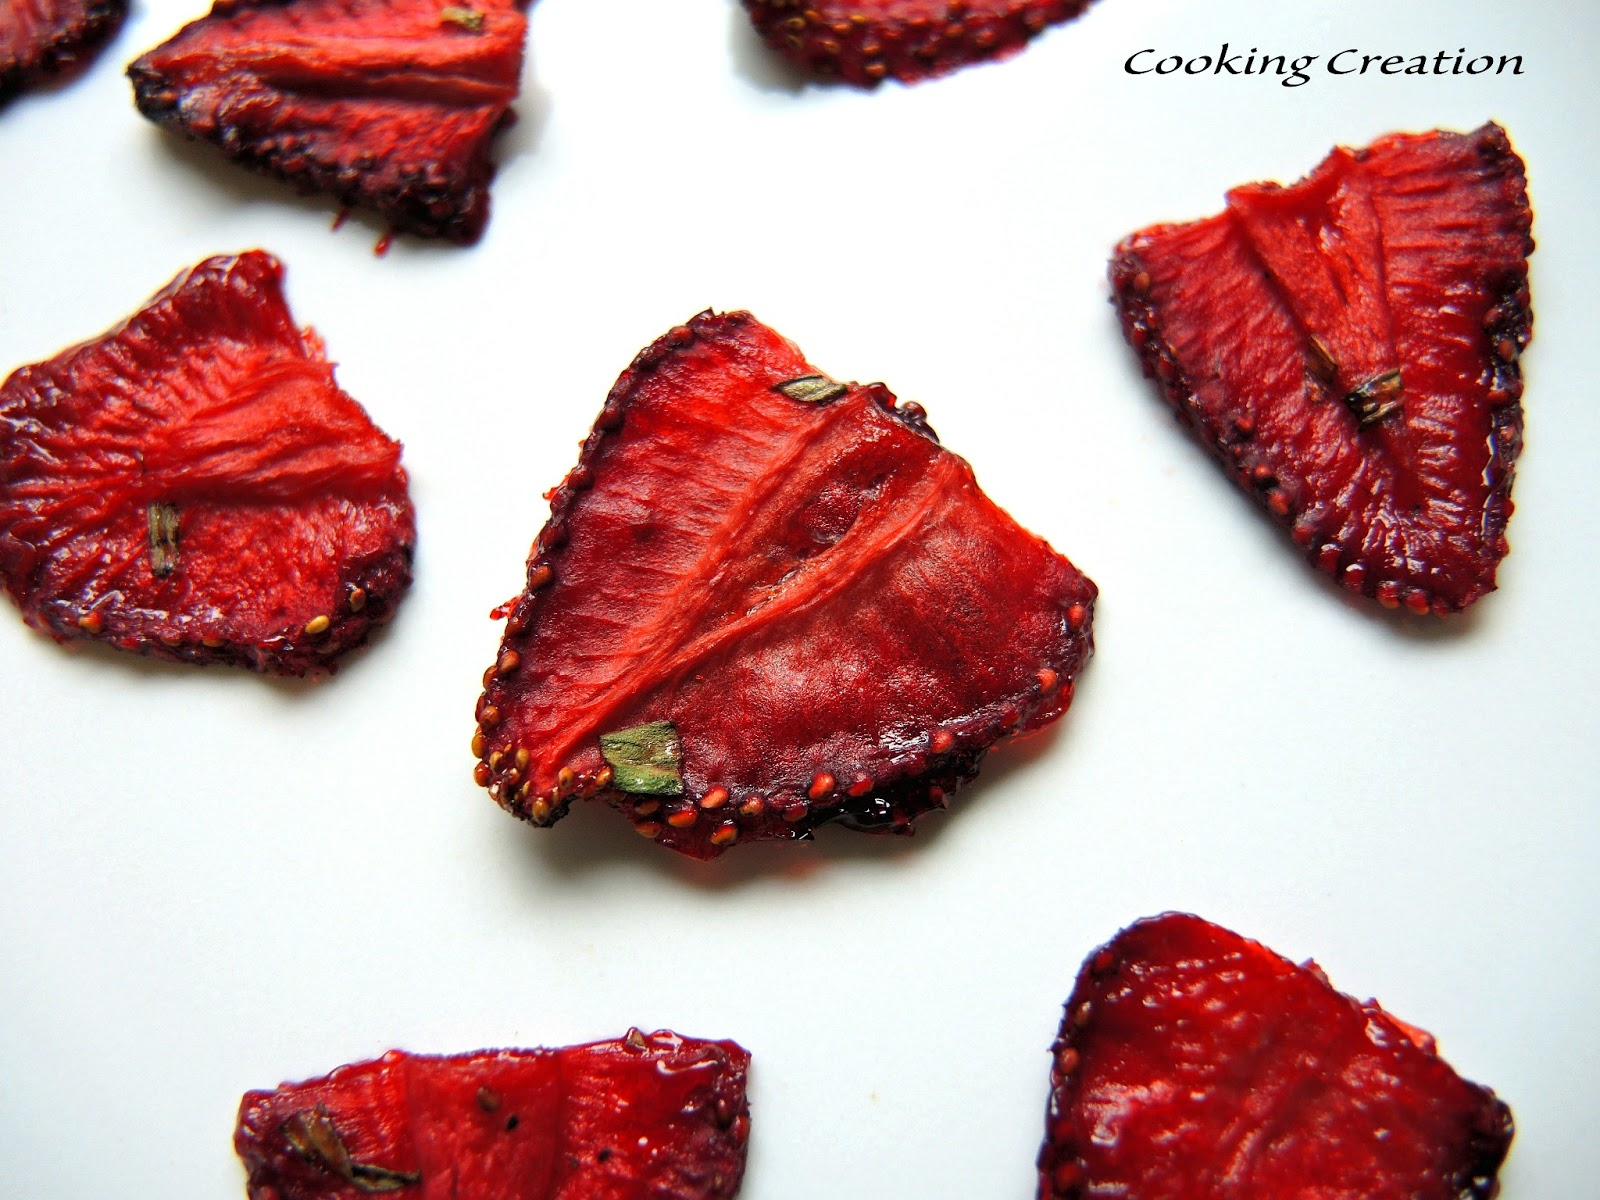 Cooking Creation: Easy Oven-Dried Strawberry Leather Slices